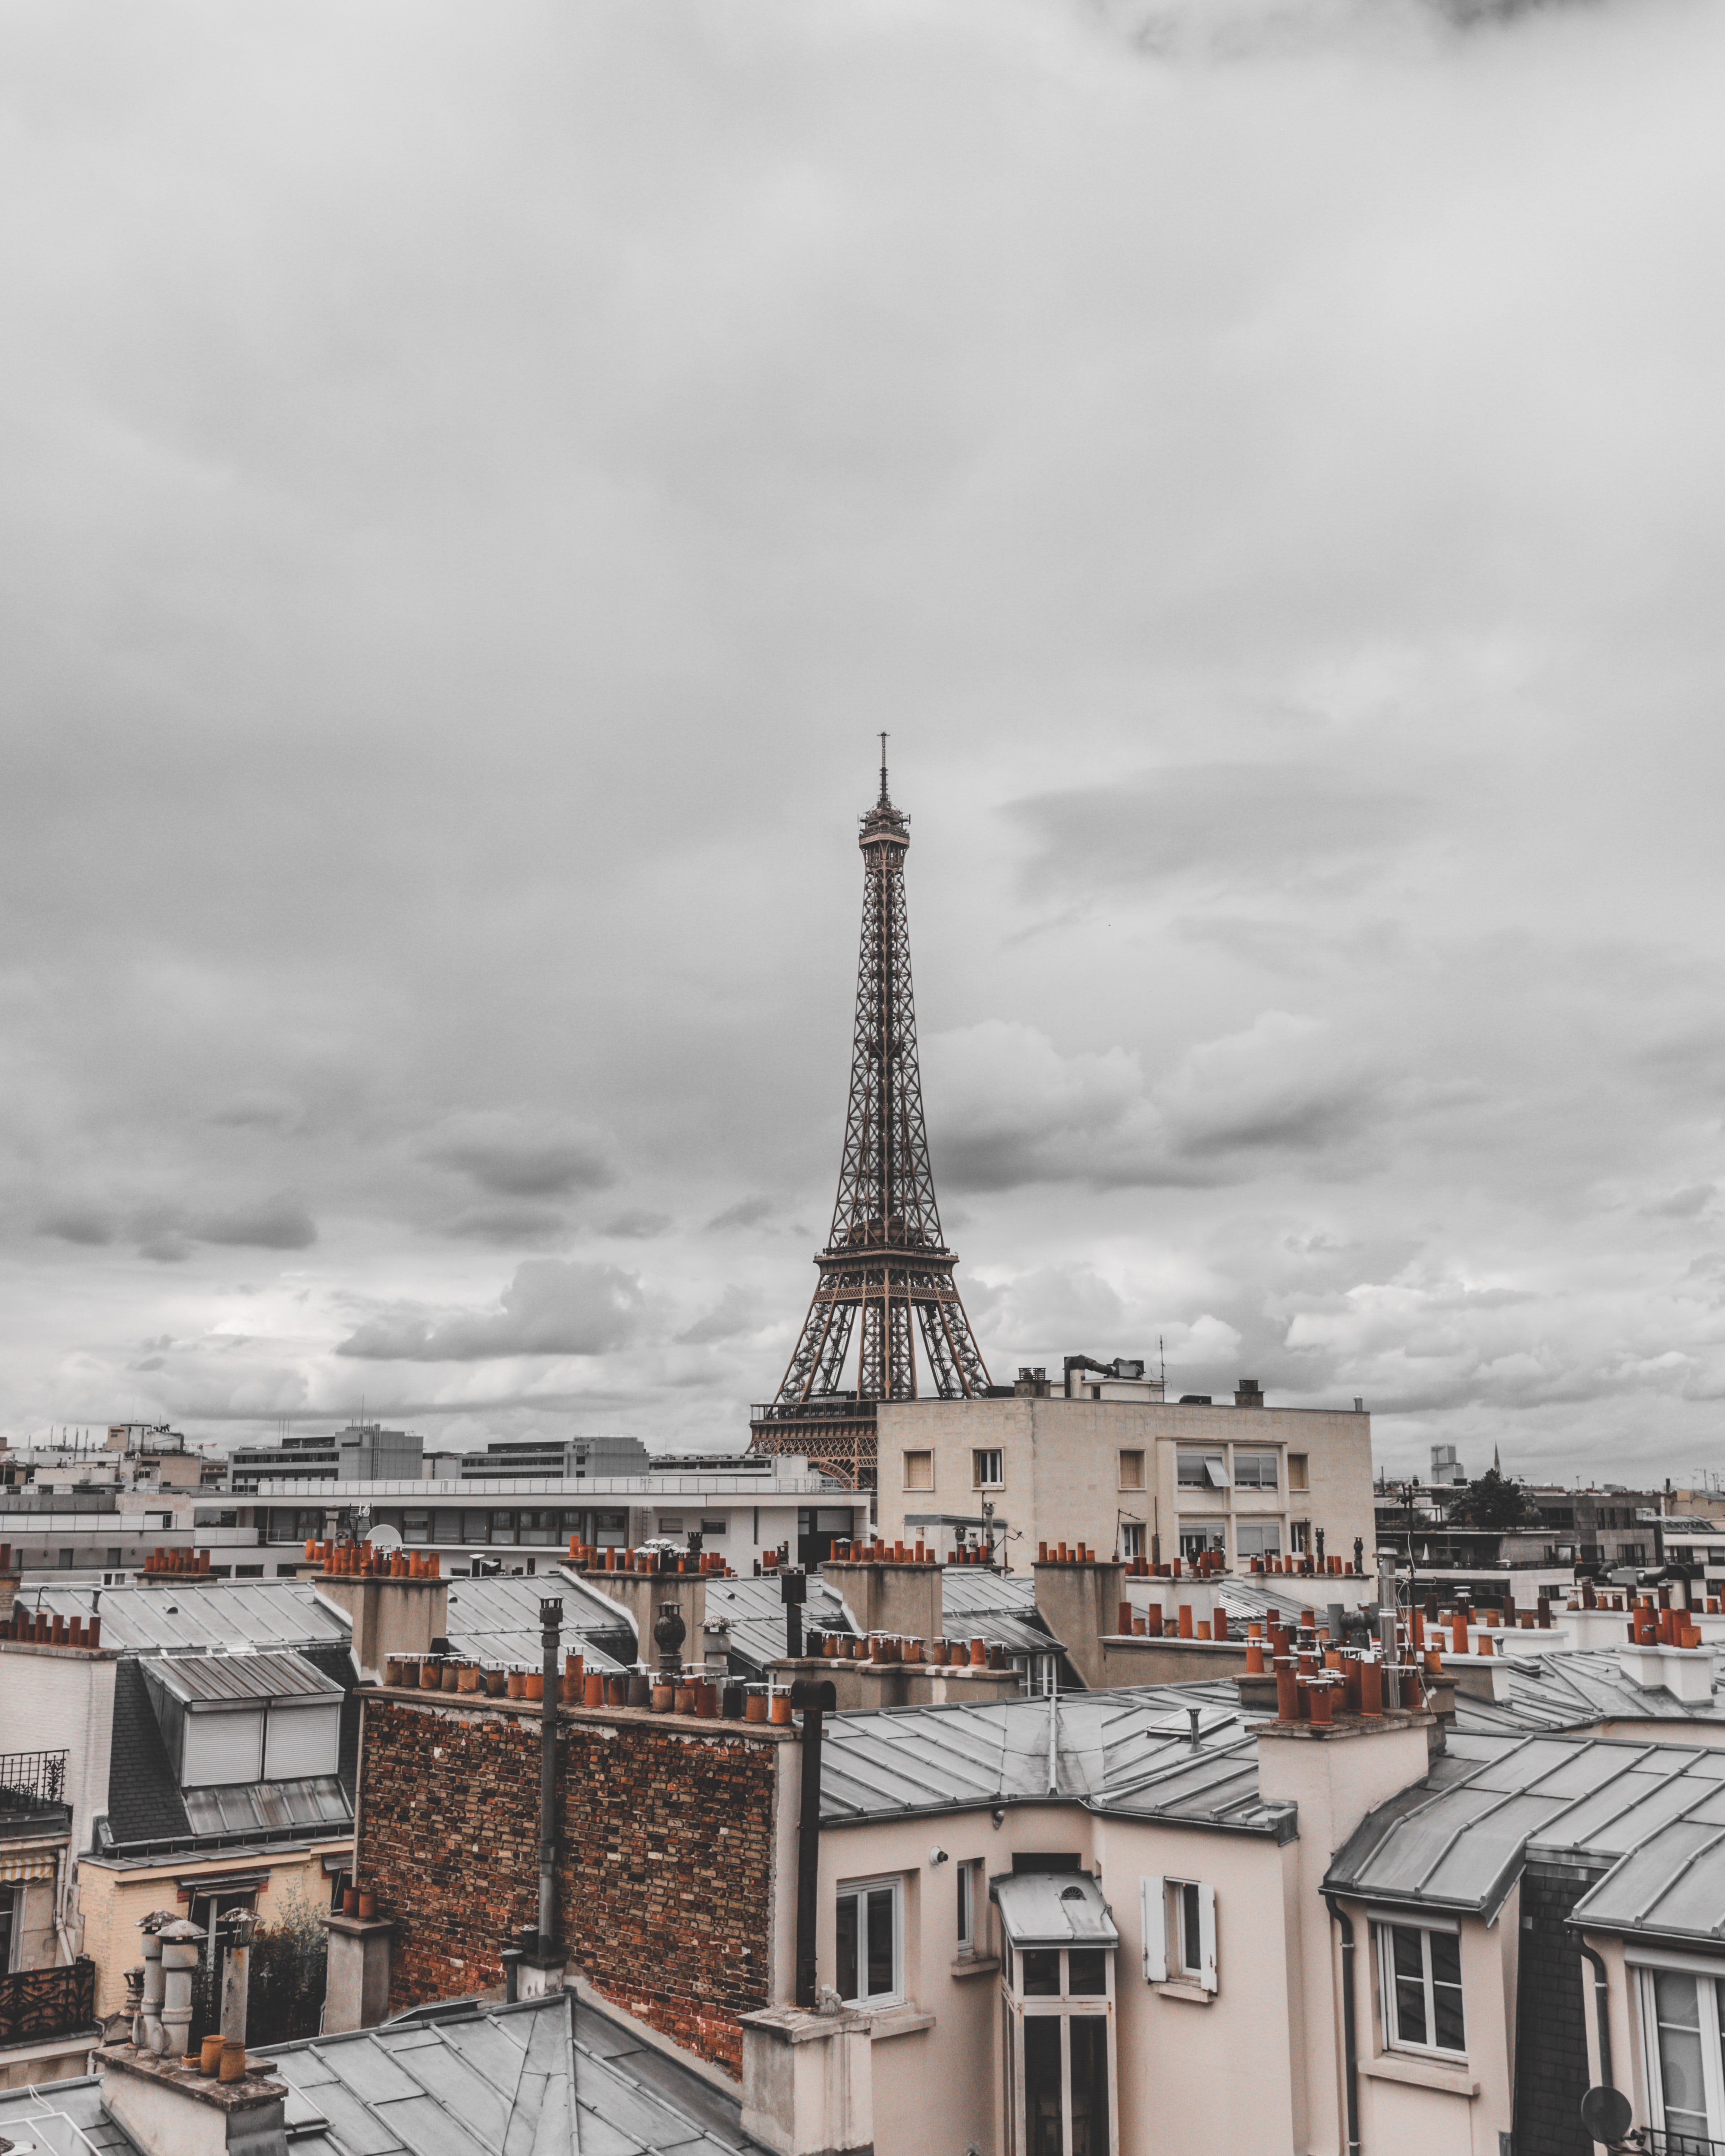 Eiffel tower under gray clouds